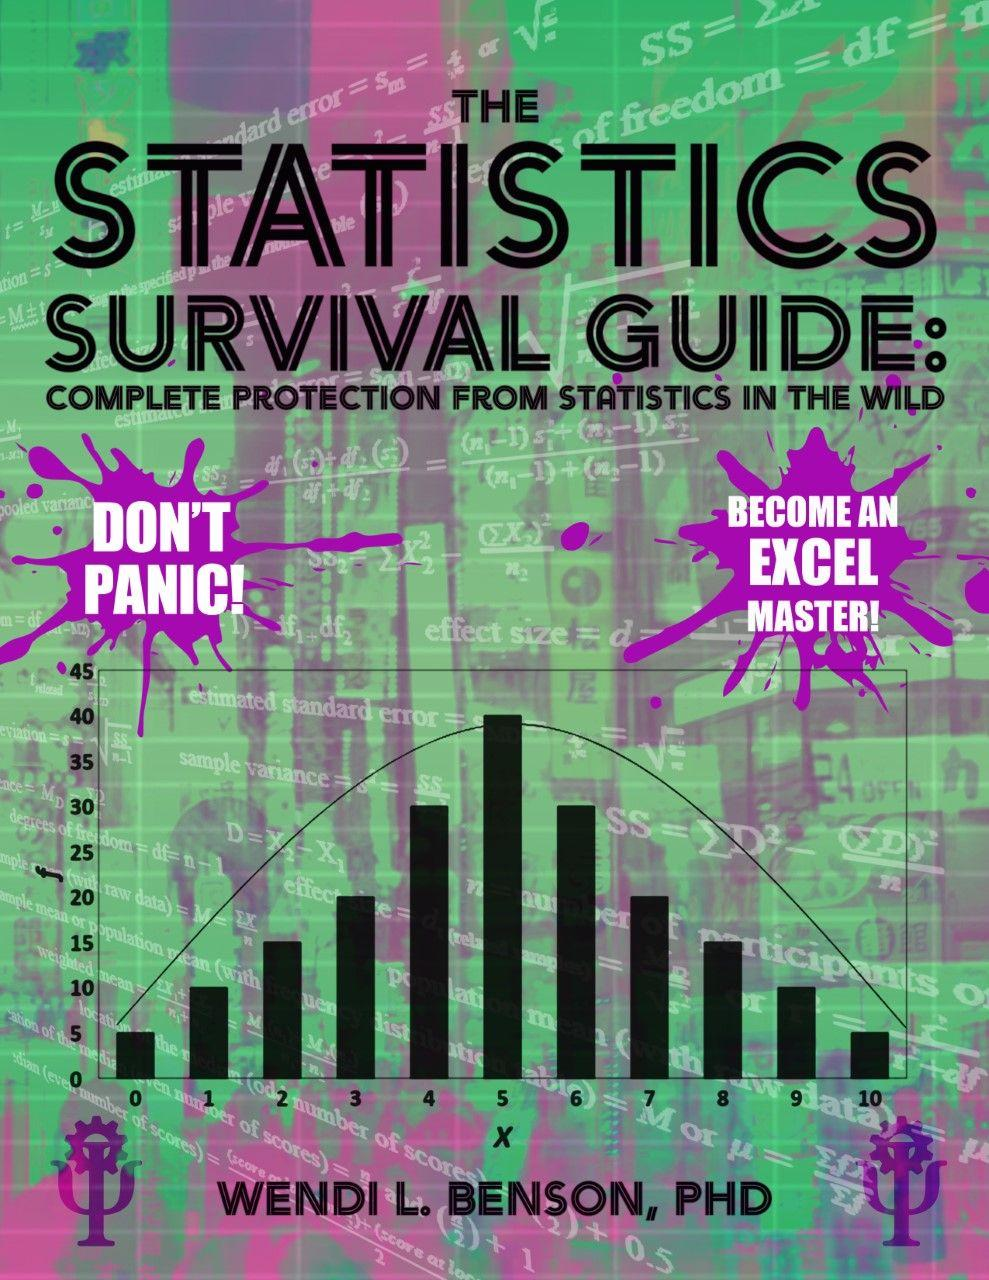 The Statistics Survival Guide (with Excel): Complete Protection from Statistics in the Wild